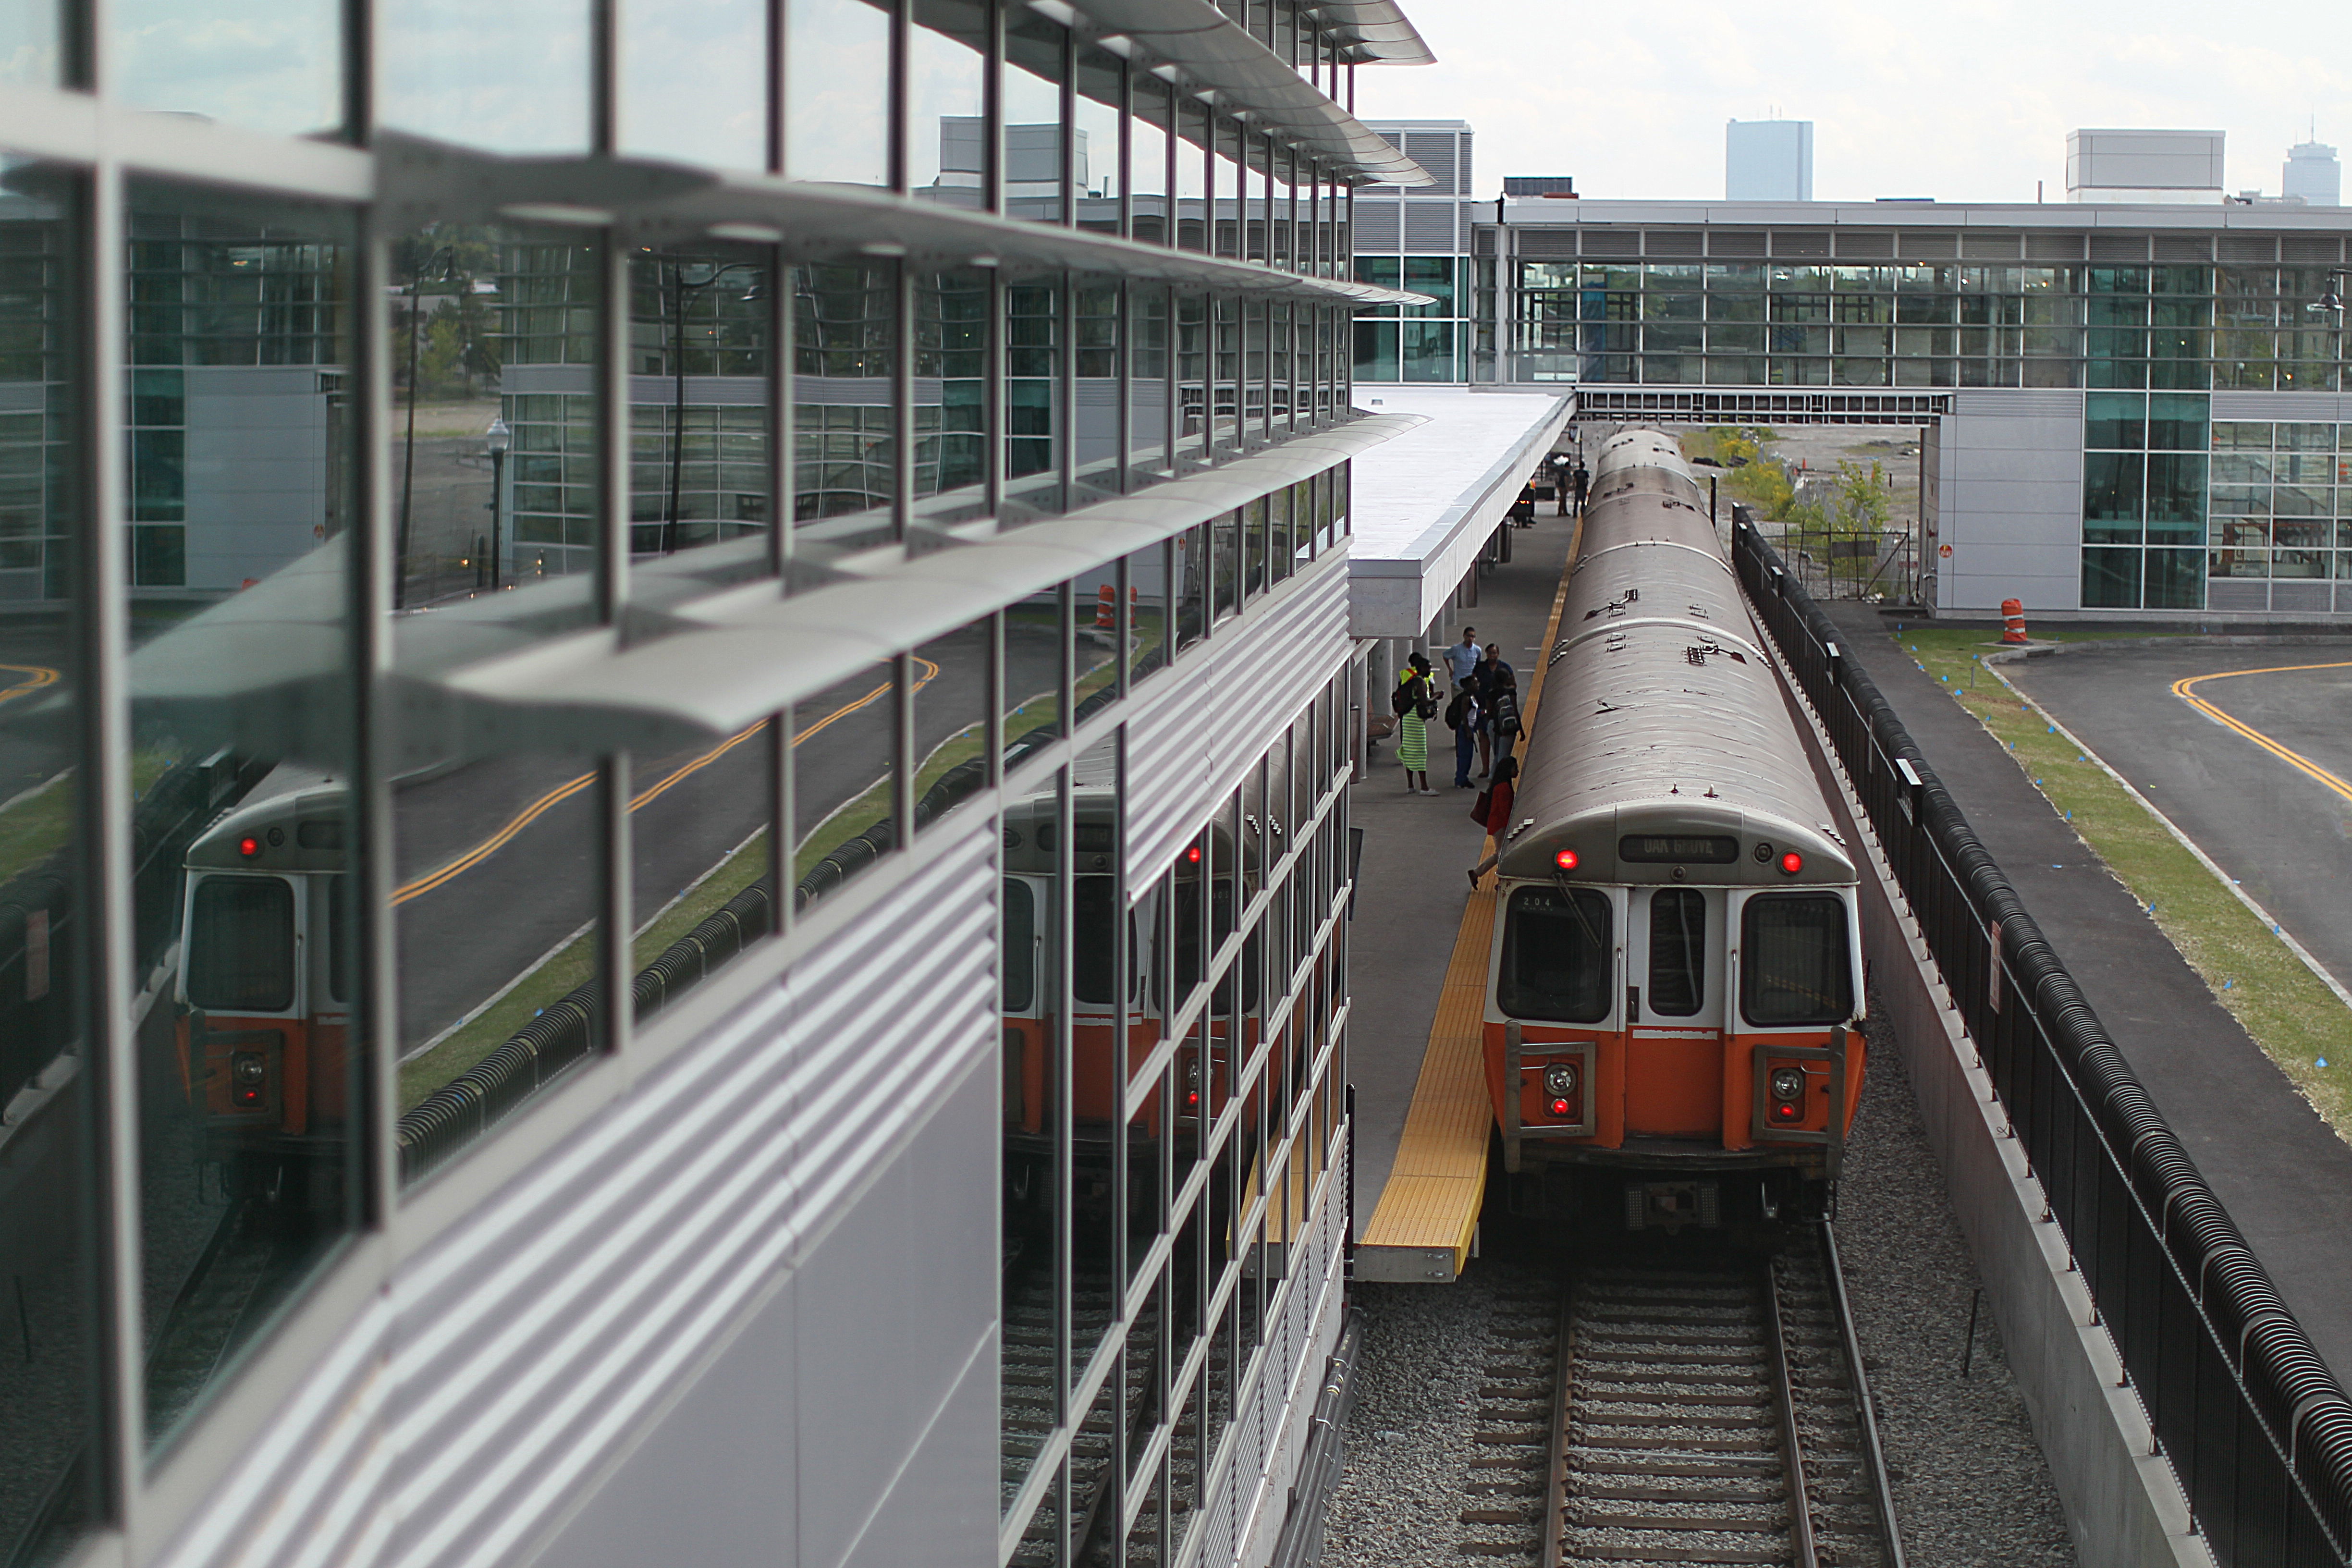 A subway train pulling away from a tall, glassy station.